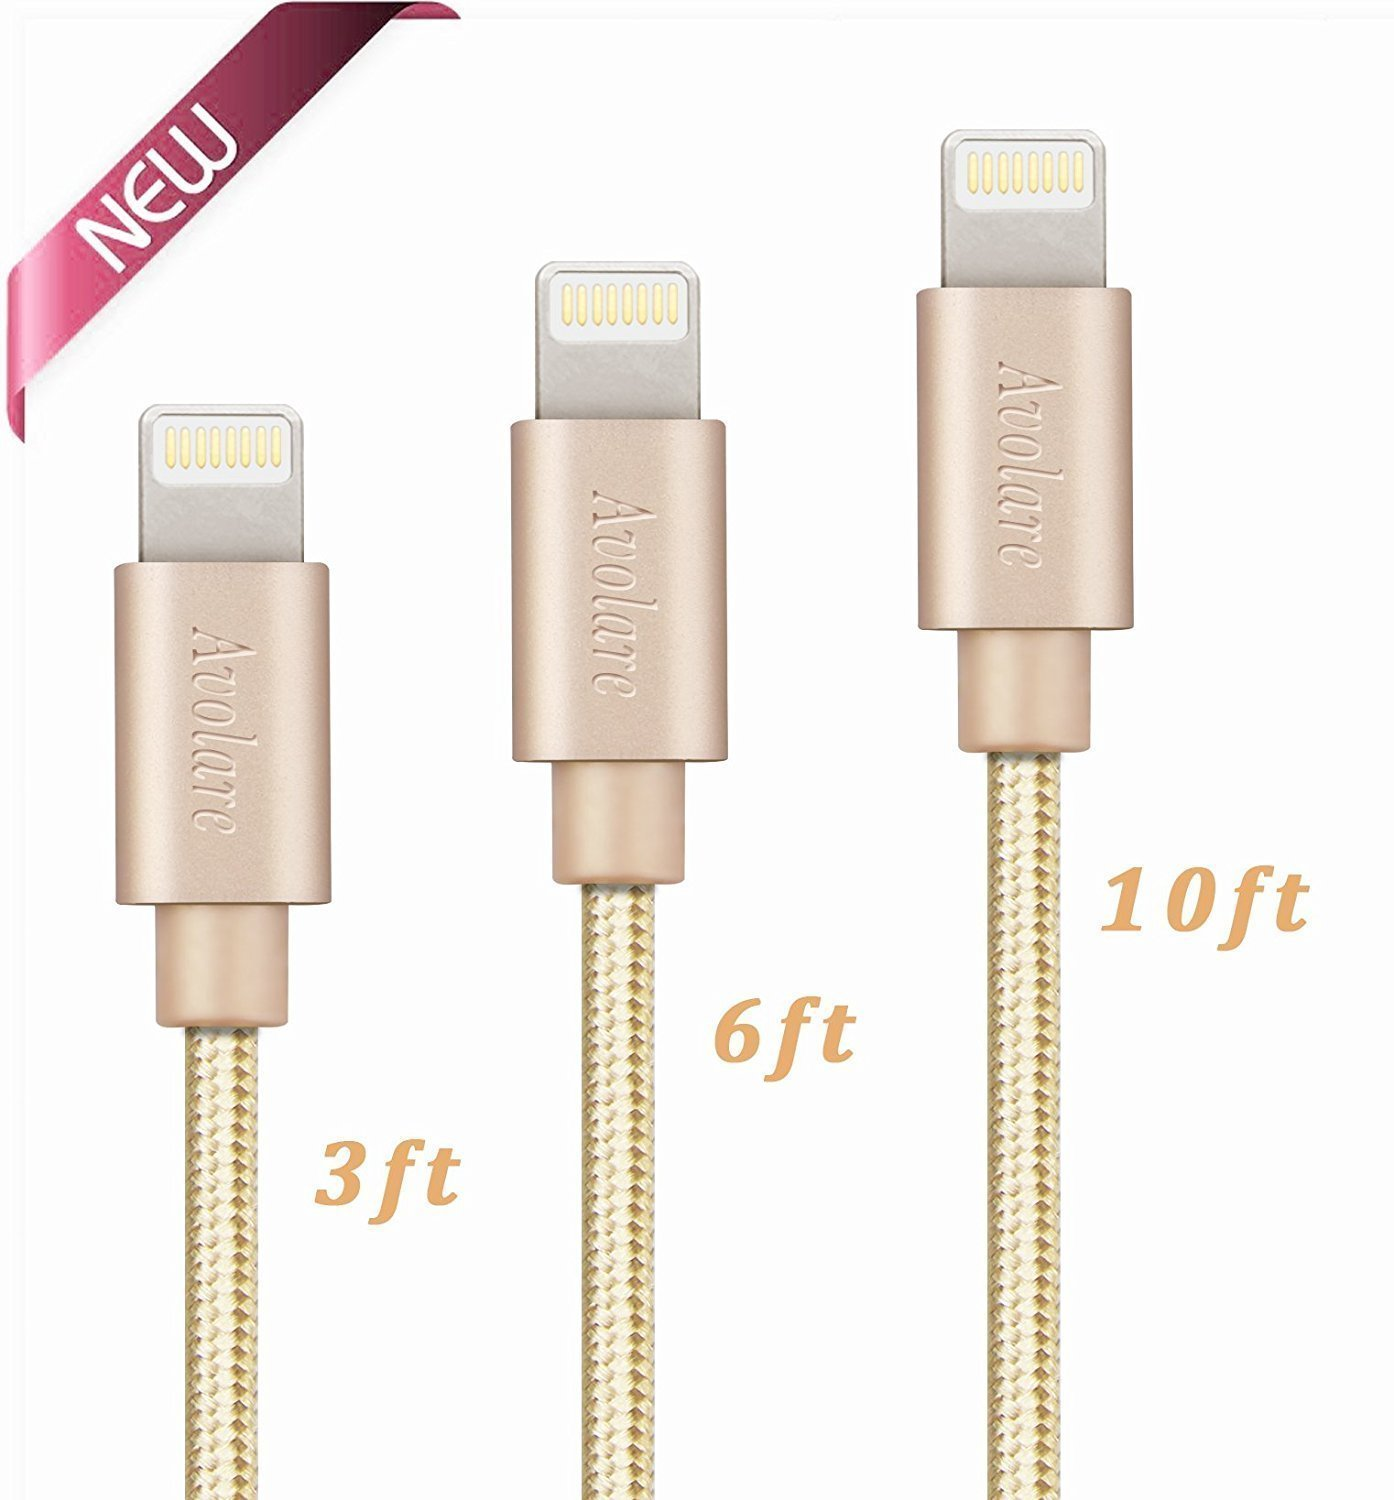 new arrival 8688f 438a1 only $ 3.90!! High quality apple charging cable 3pcs / 3, 6, 9ft